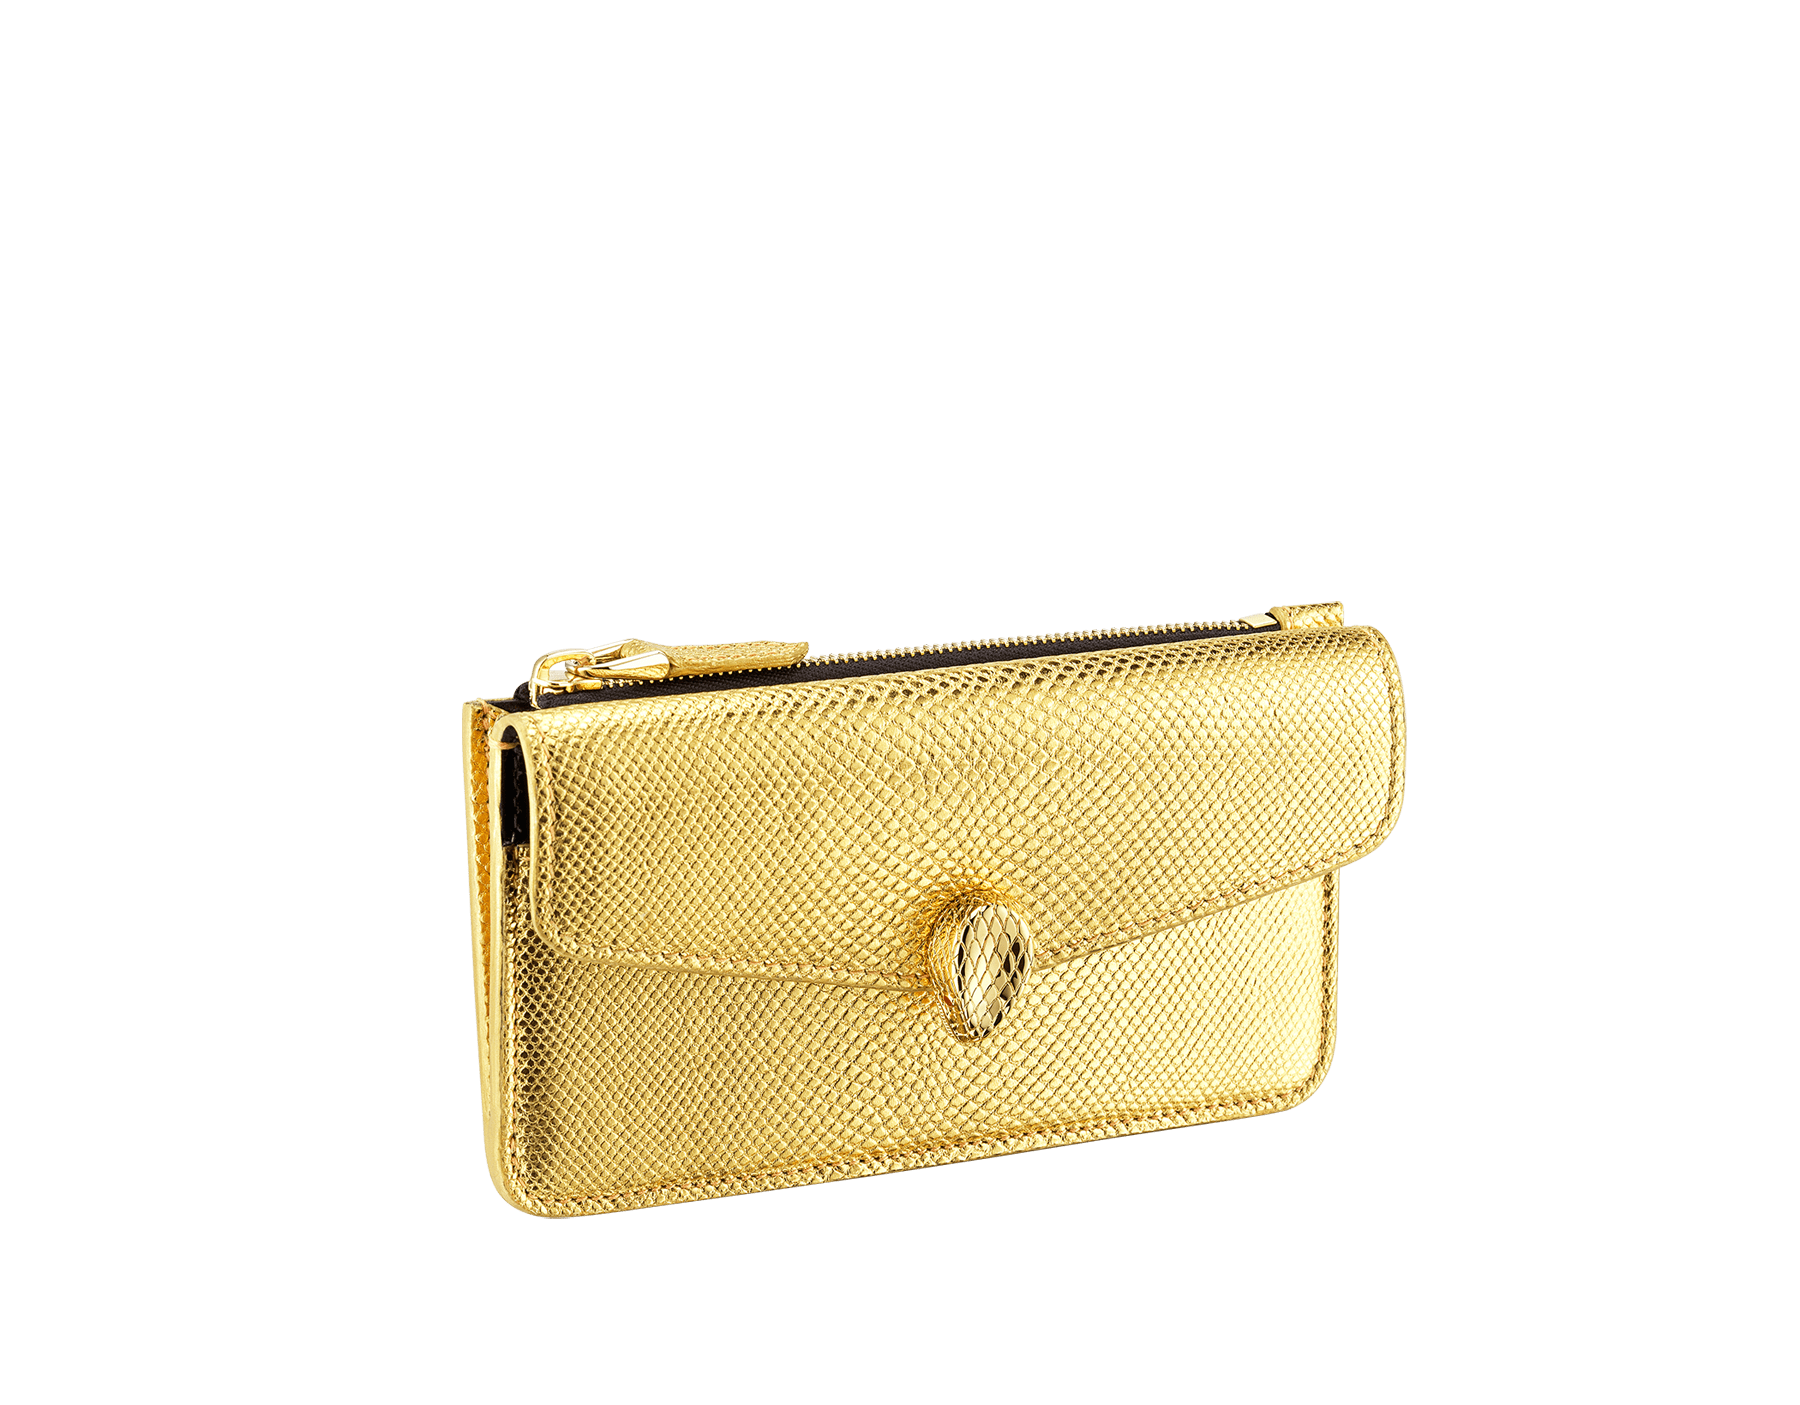 """Serpenti Forever"" card holder in ""Molten"" gold karung skin, offering a touch of radiance for the Winter Holidays. New Serpenti head closure in gold-plated brass complete with ruby-red enamel eyes. 290508 image 1"